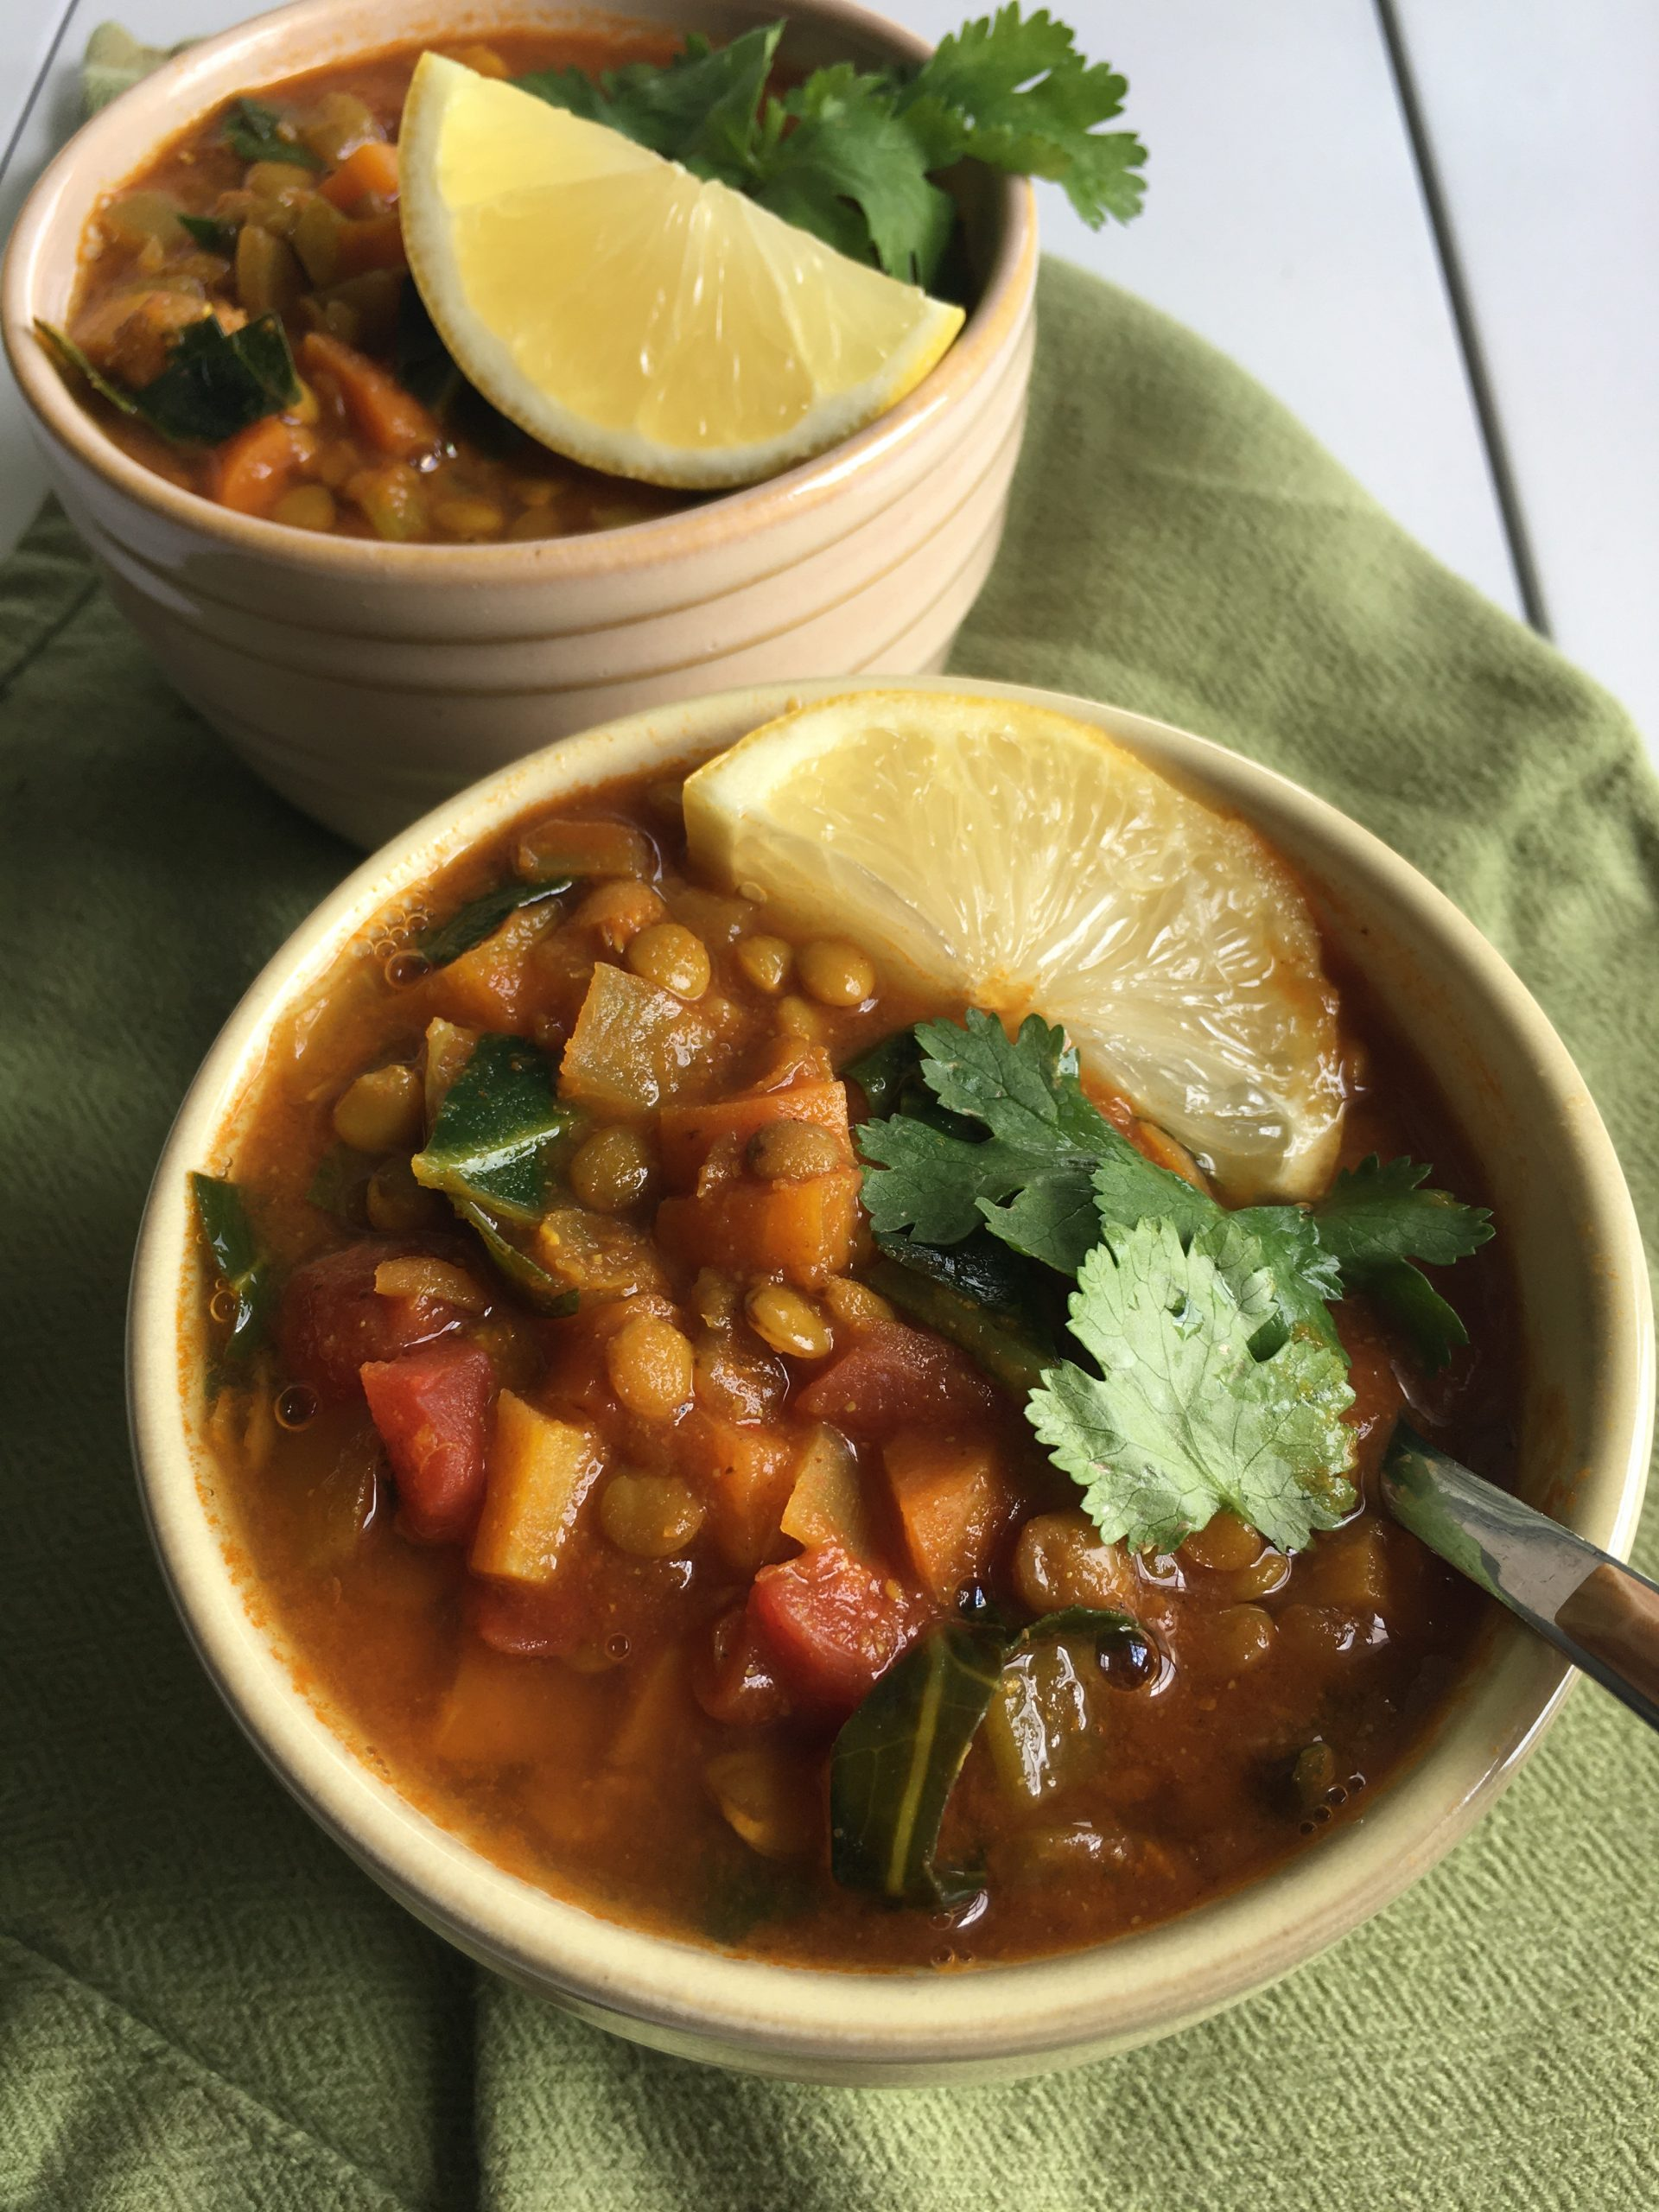 Two bowls of spiced vegetable lentil soup topped with cilantro and lemon wedges